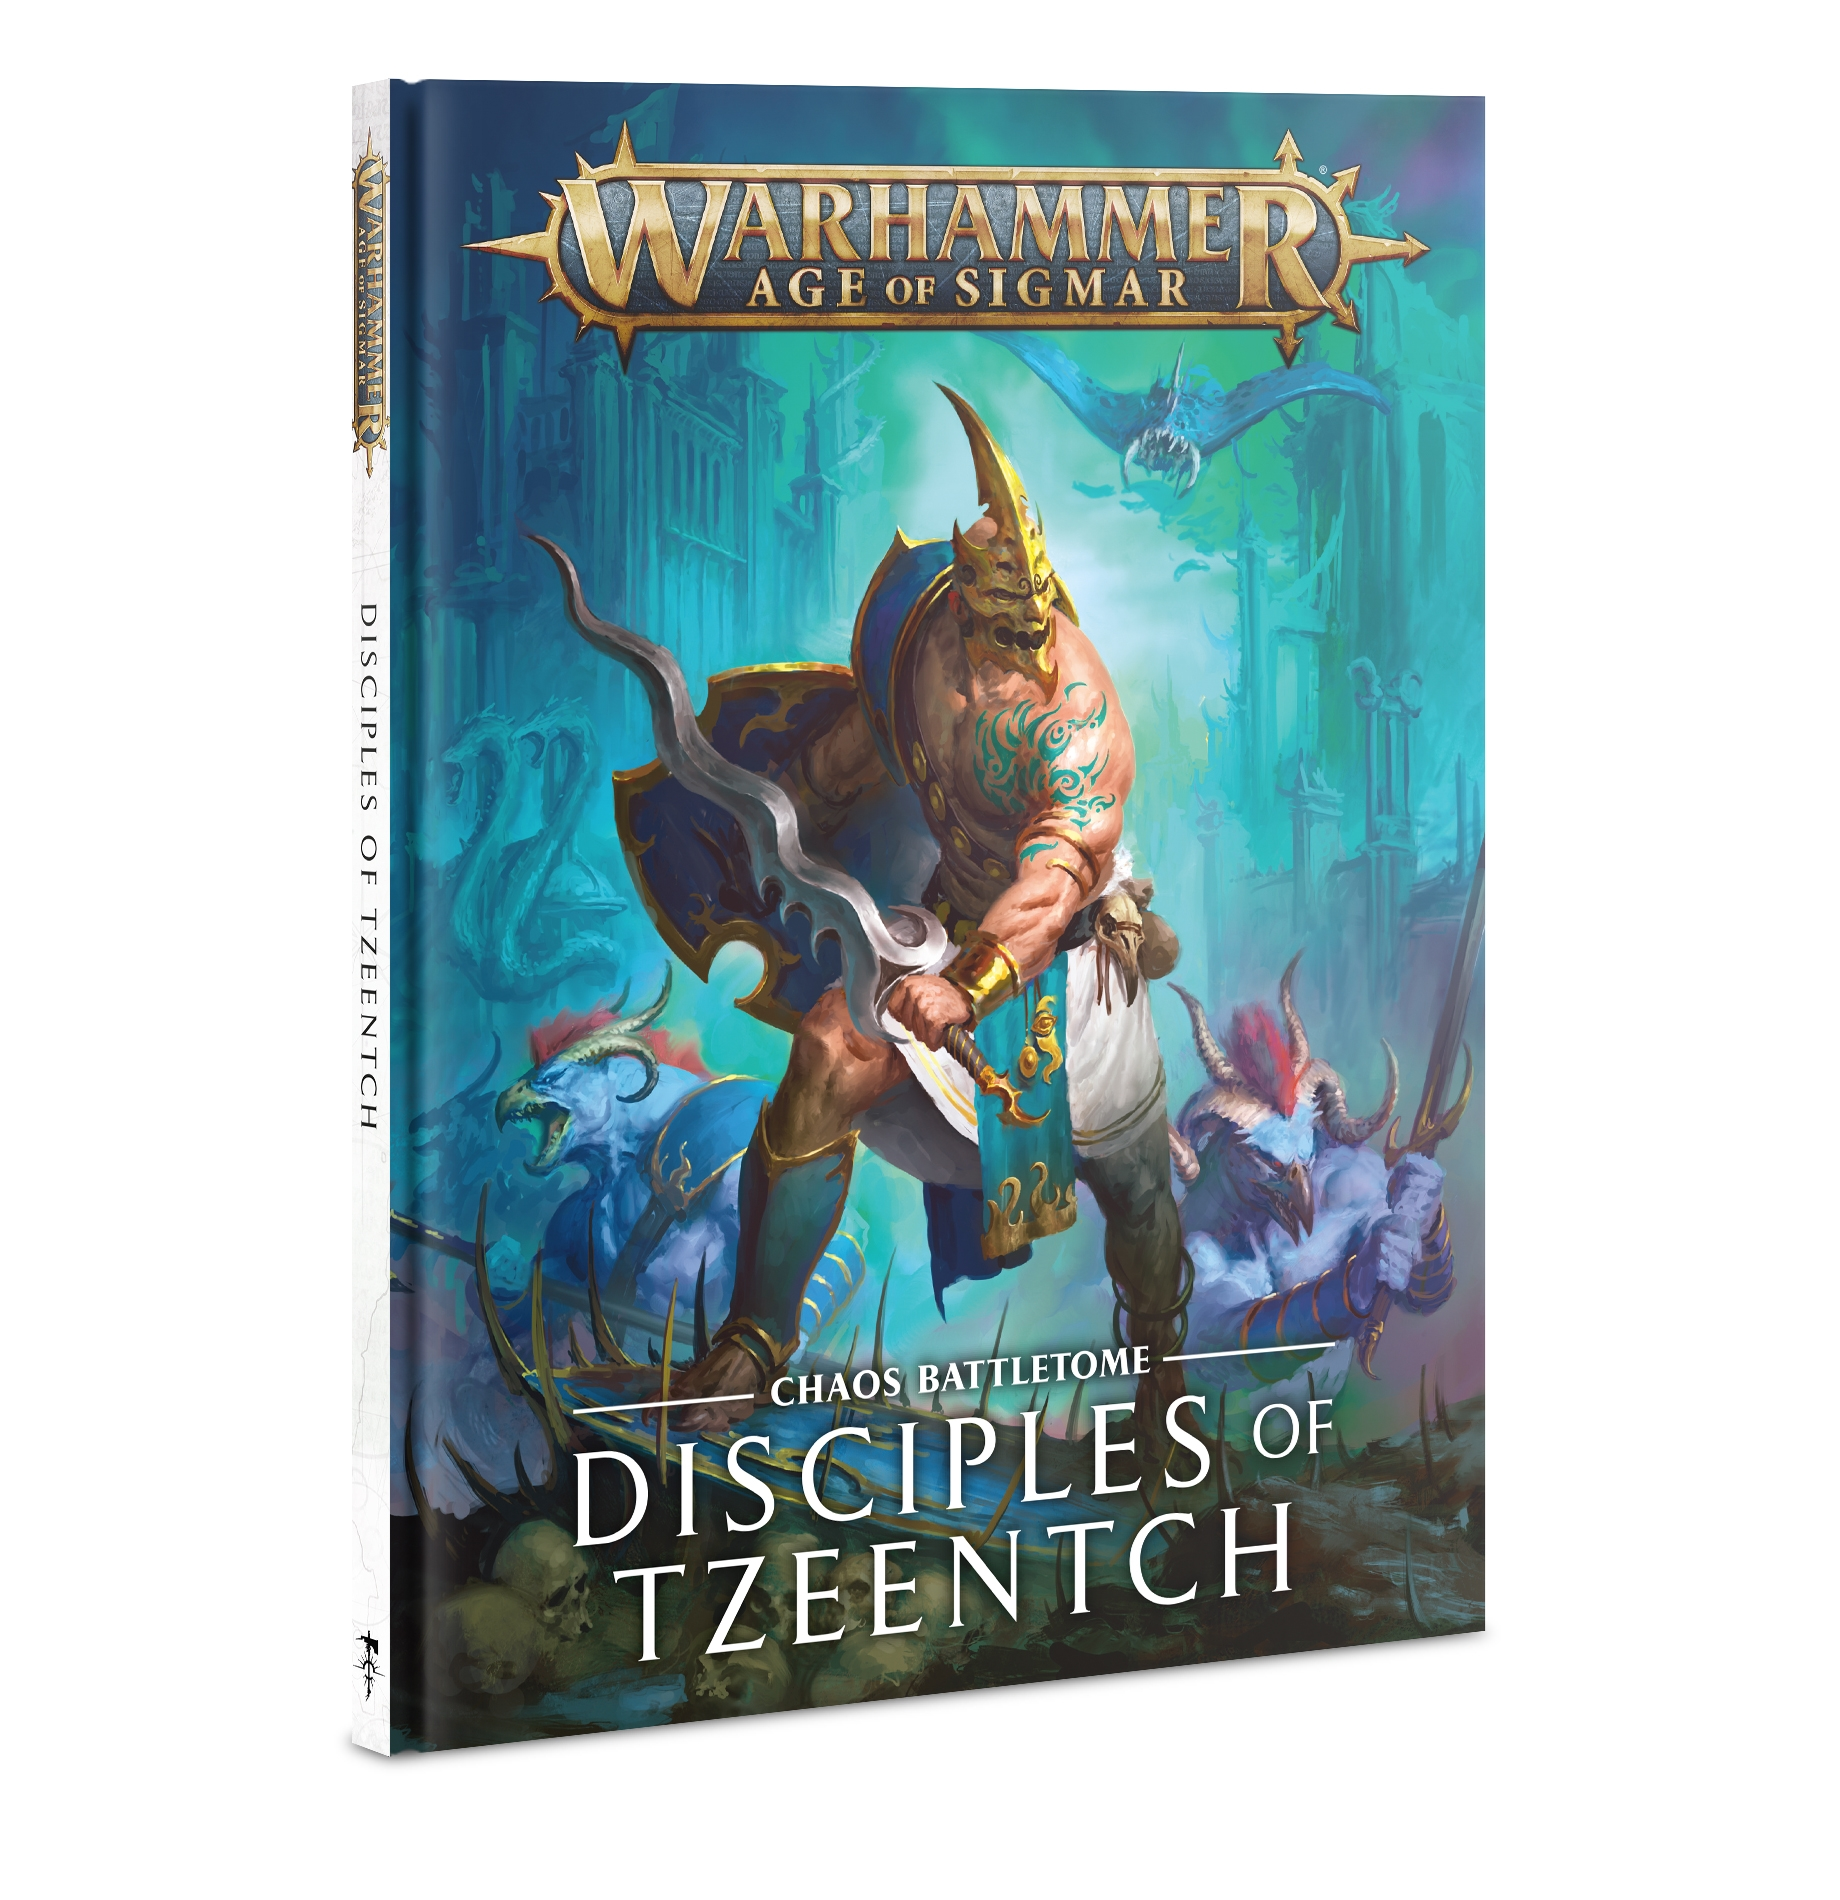 Warhammer Age of Sigmar: Battletome: Disciples of Tzeentch (2020)